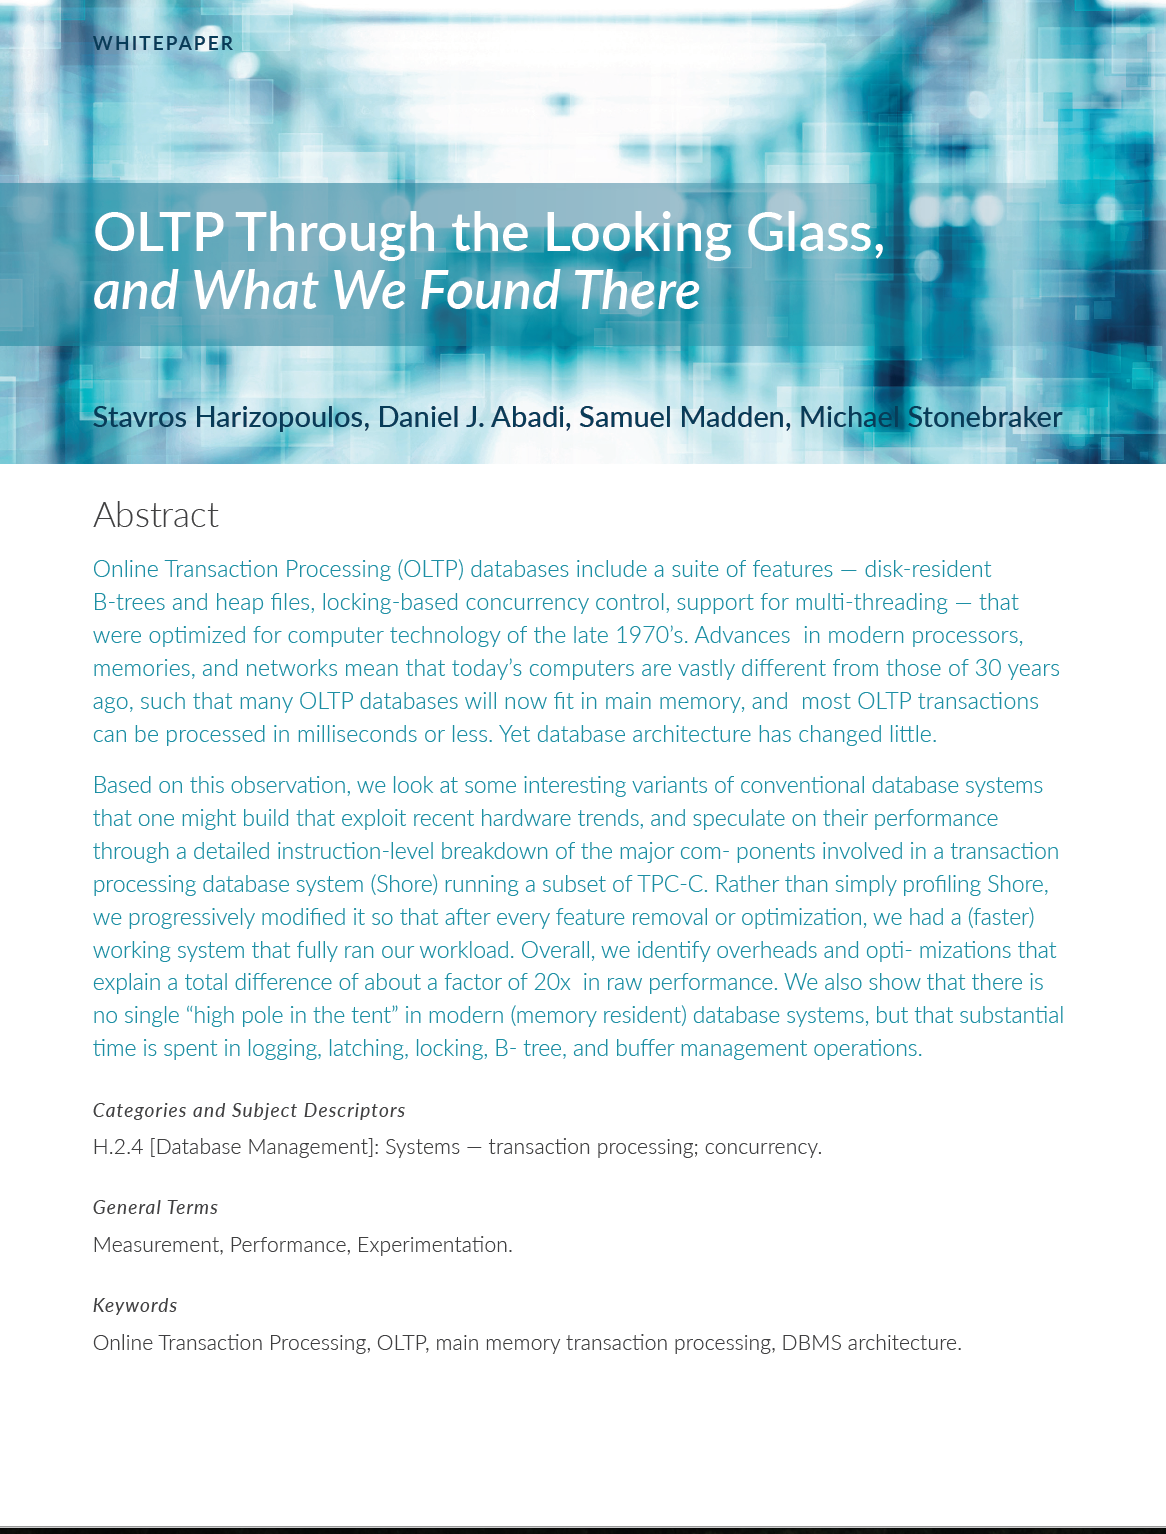 Whitepaper: Through the Looking Glass by Micheal Stonebraker